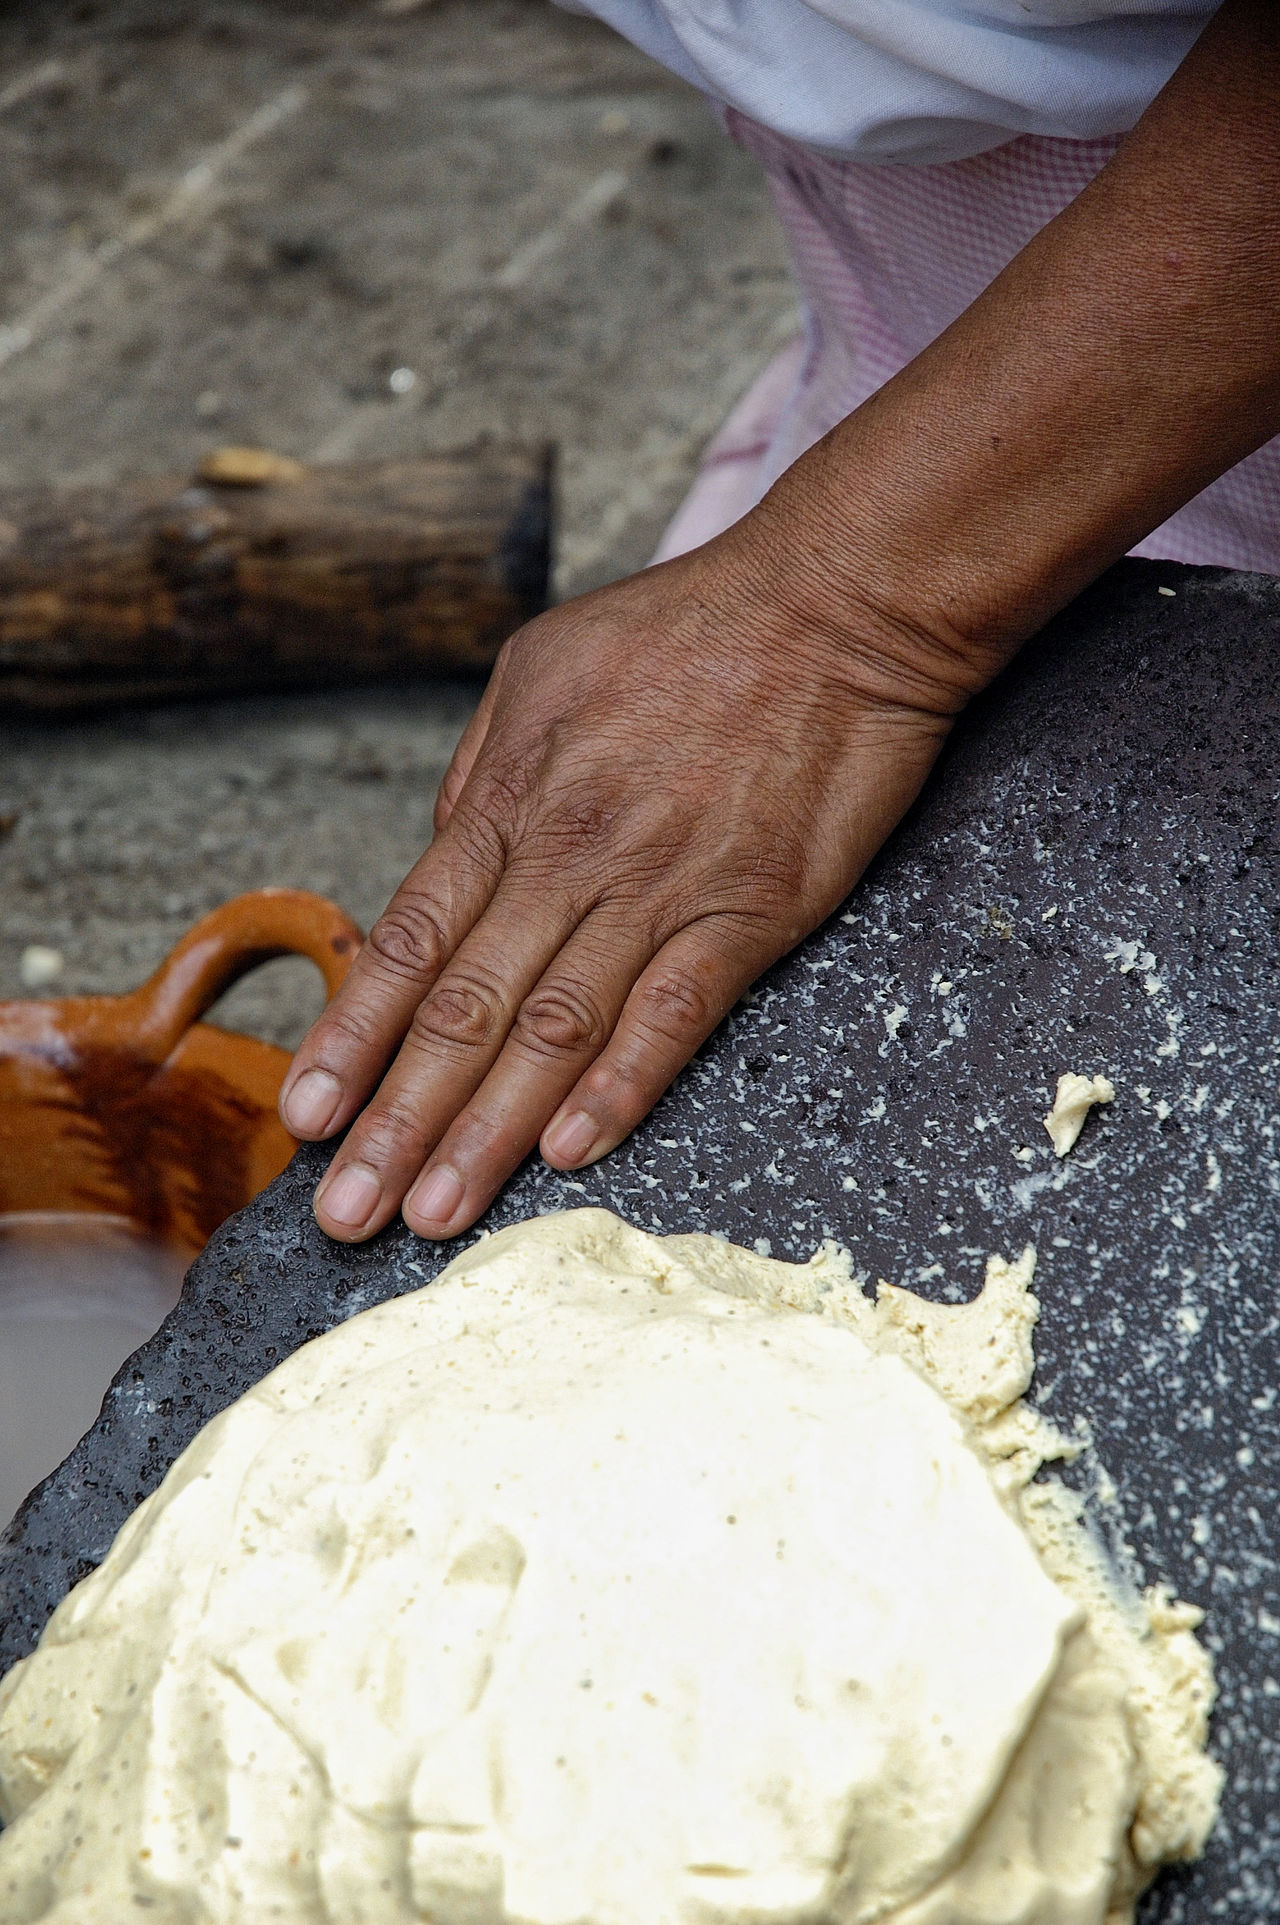 Corn Food Food And Drink Freshness High Angle View Holding Human Body Part Human Hand Kneading Making Tortillas Preparation  Real People Traditional Cooking Working Hands Visual Feast